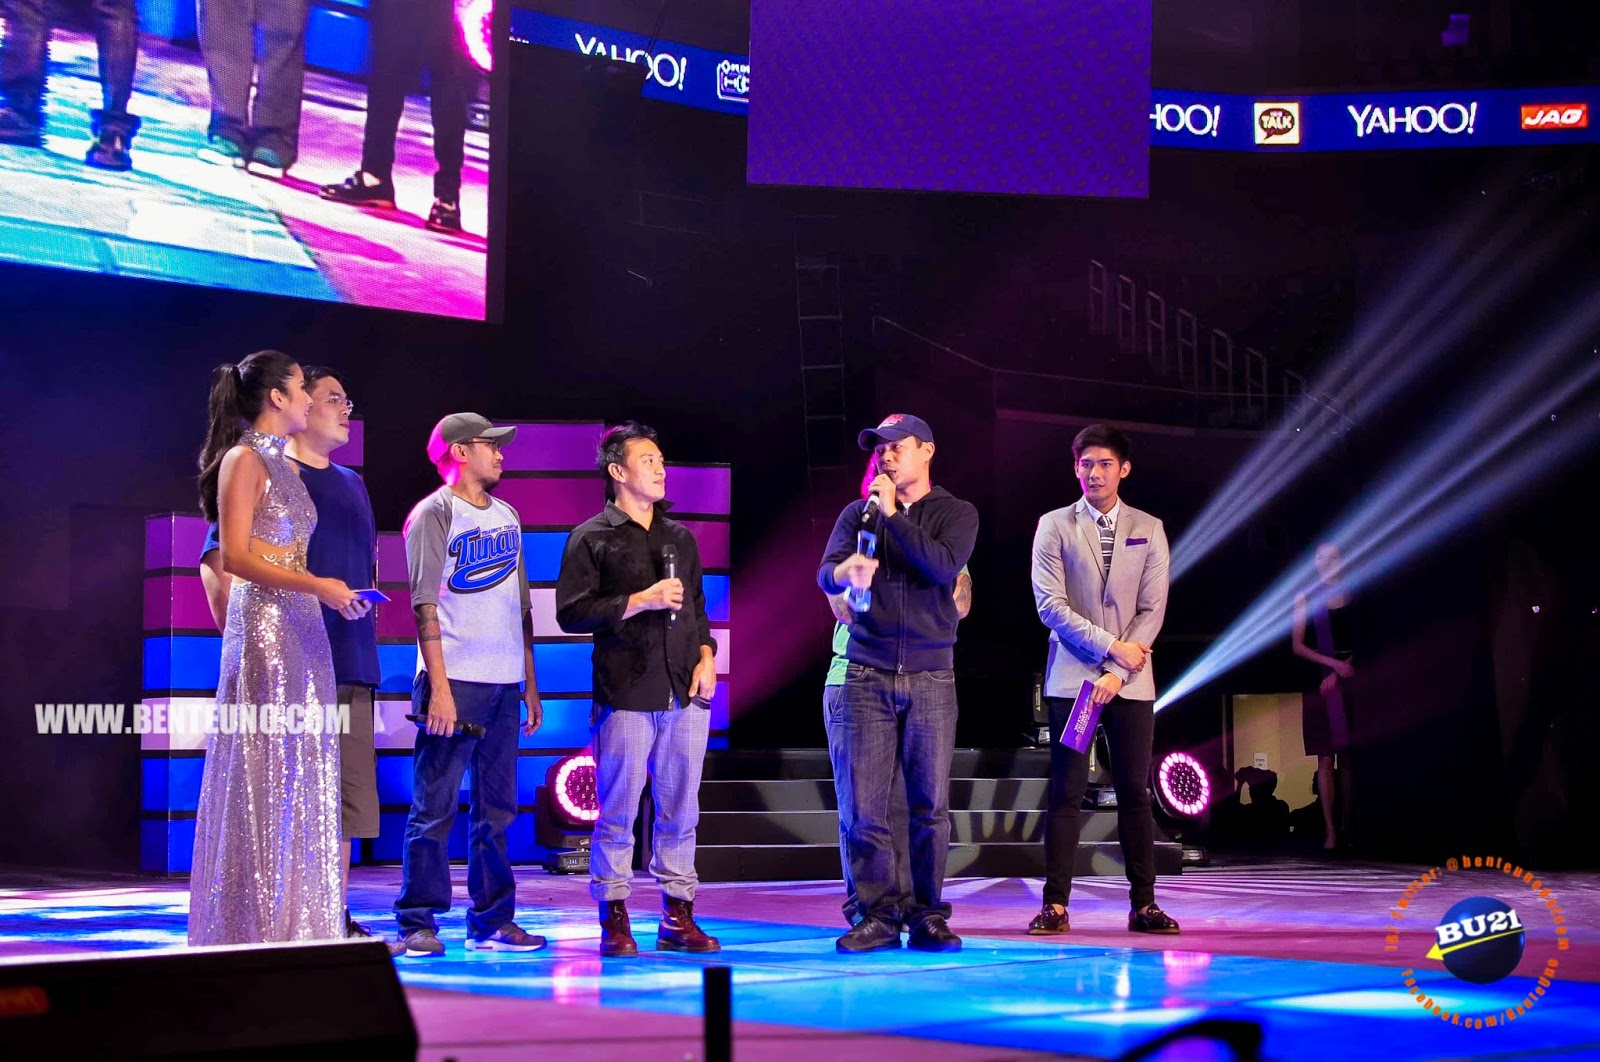 Parokya ni Edgar named Band of the Year at the Yahoo Celebrity Awards 2014